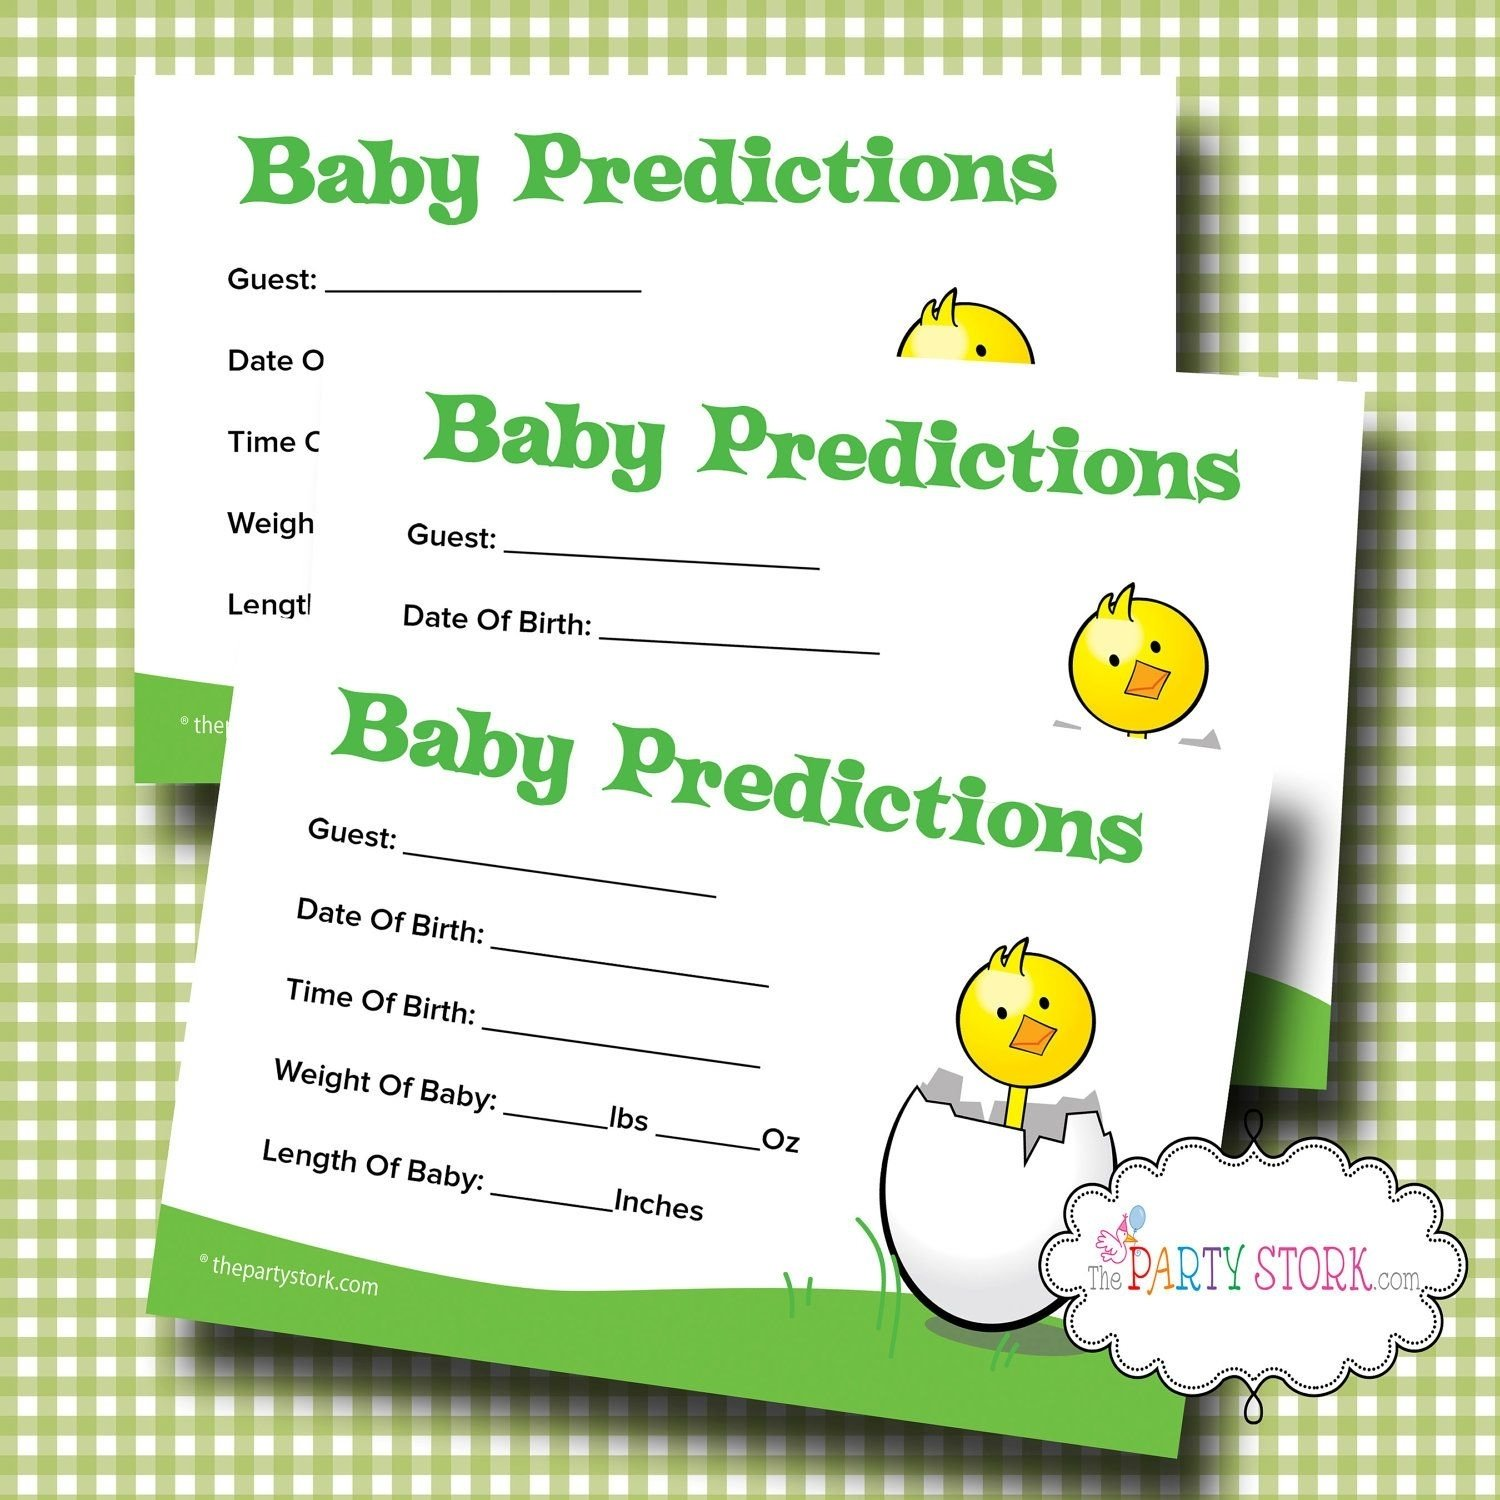 10 Stylish Free Baby Shower Games Ideas printable baby shower prediction game baby shower predictions card 5 2020